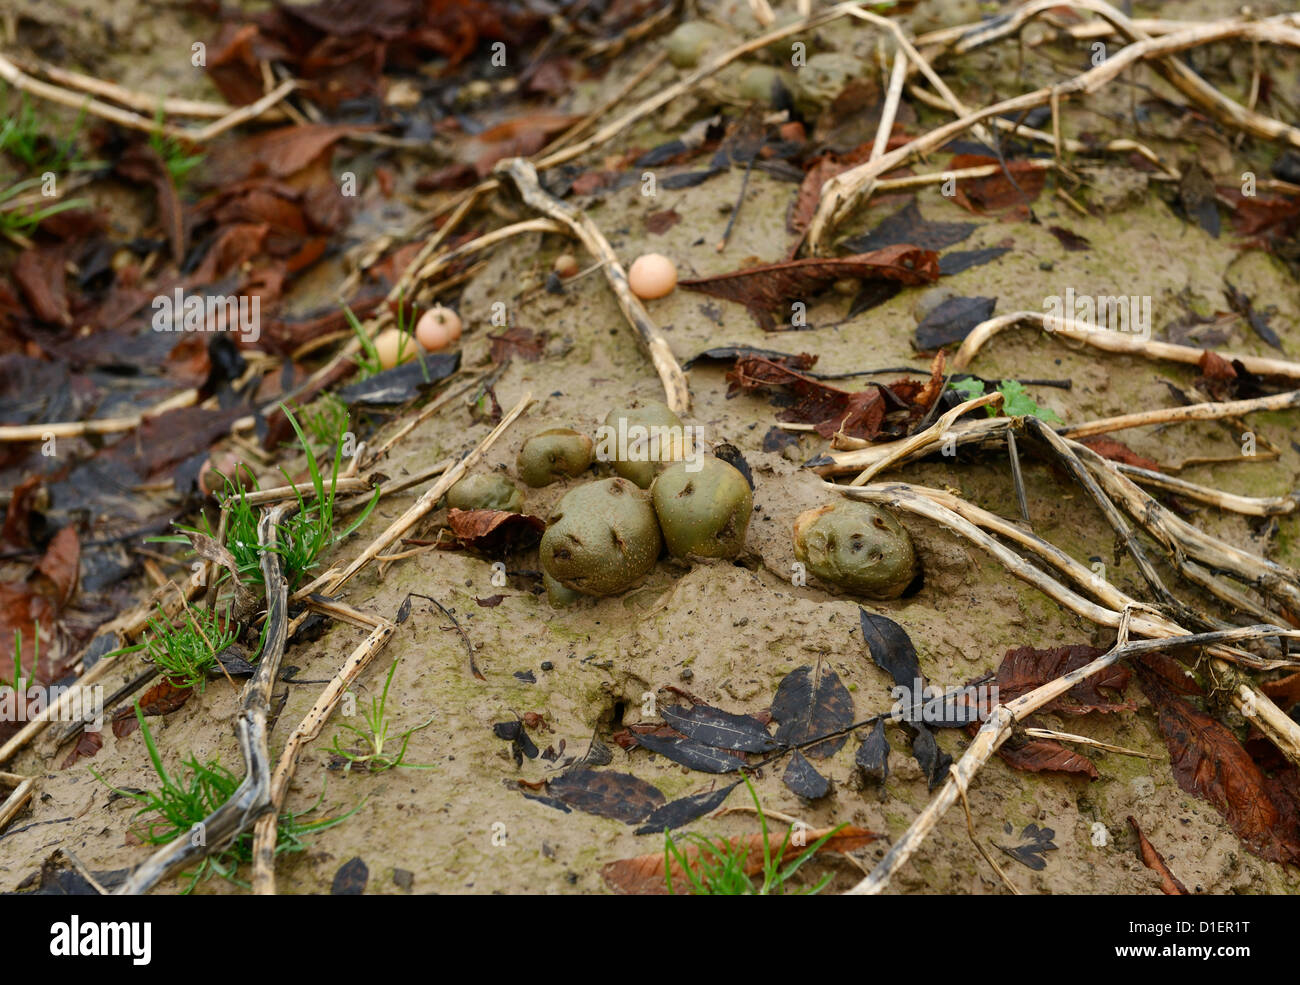 Rotten potato crop due to the wet UK weather - Stock Image